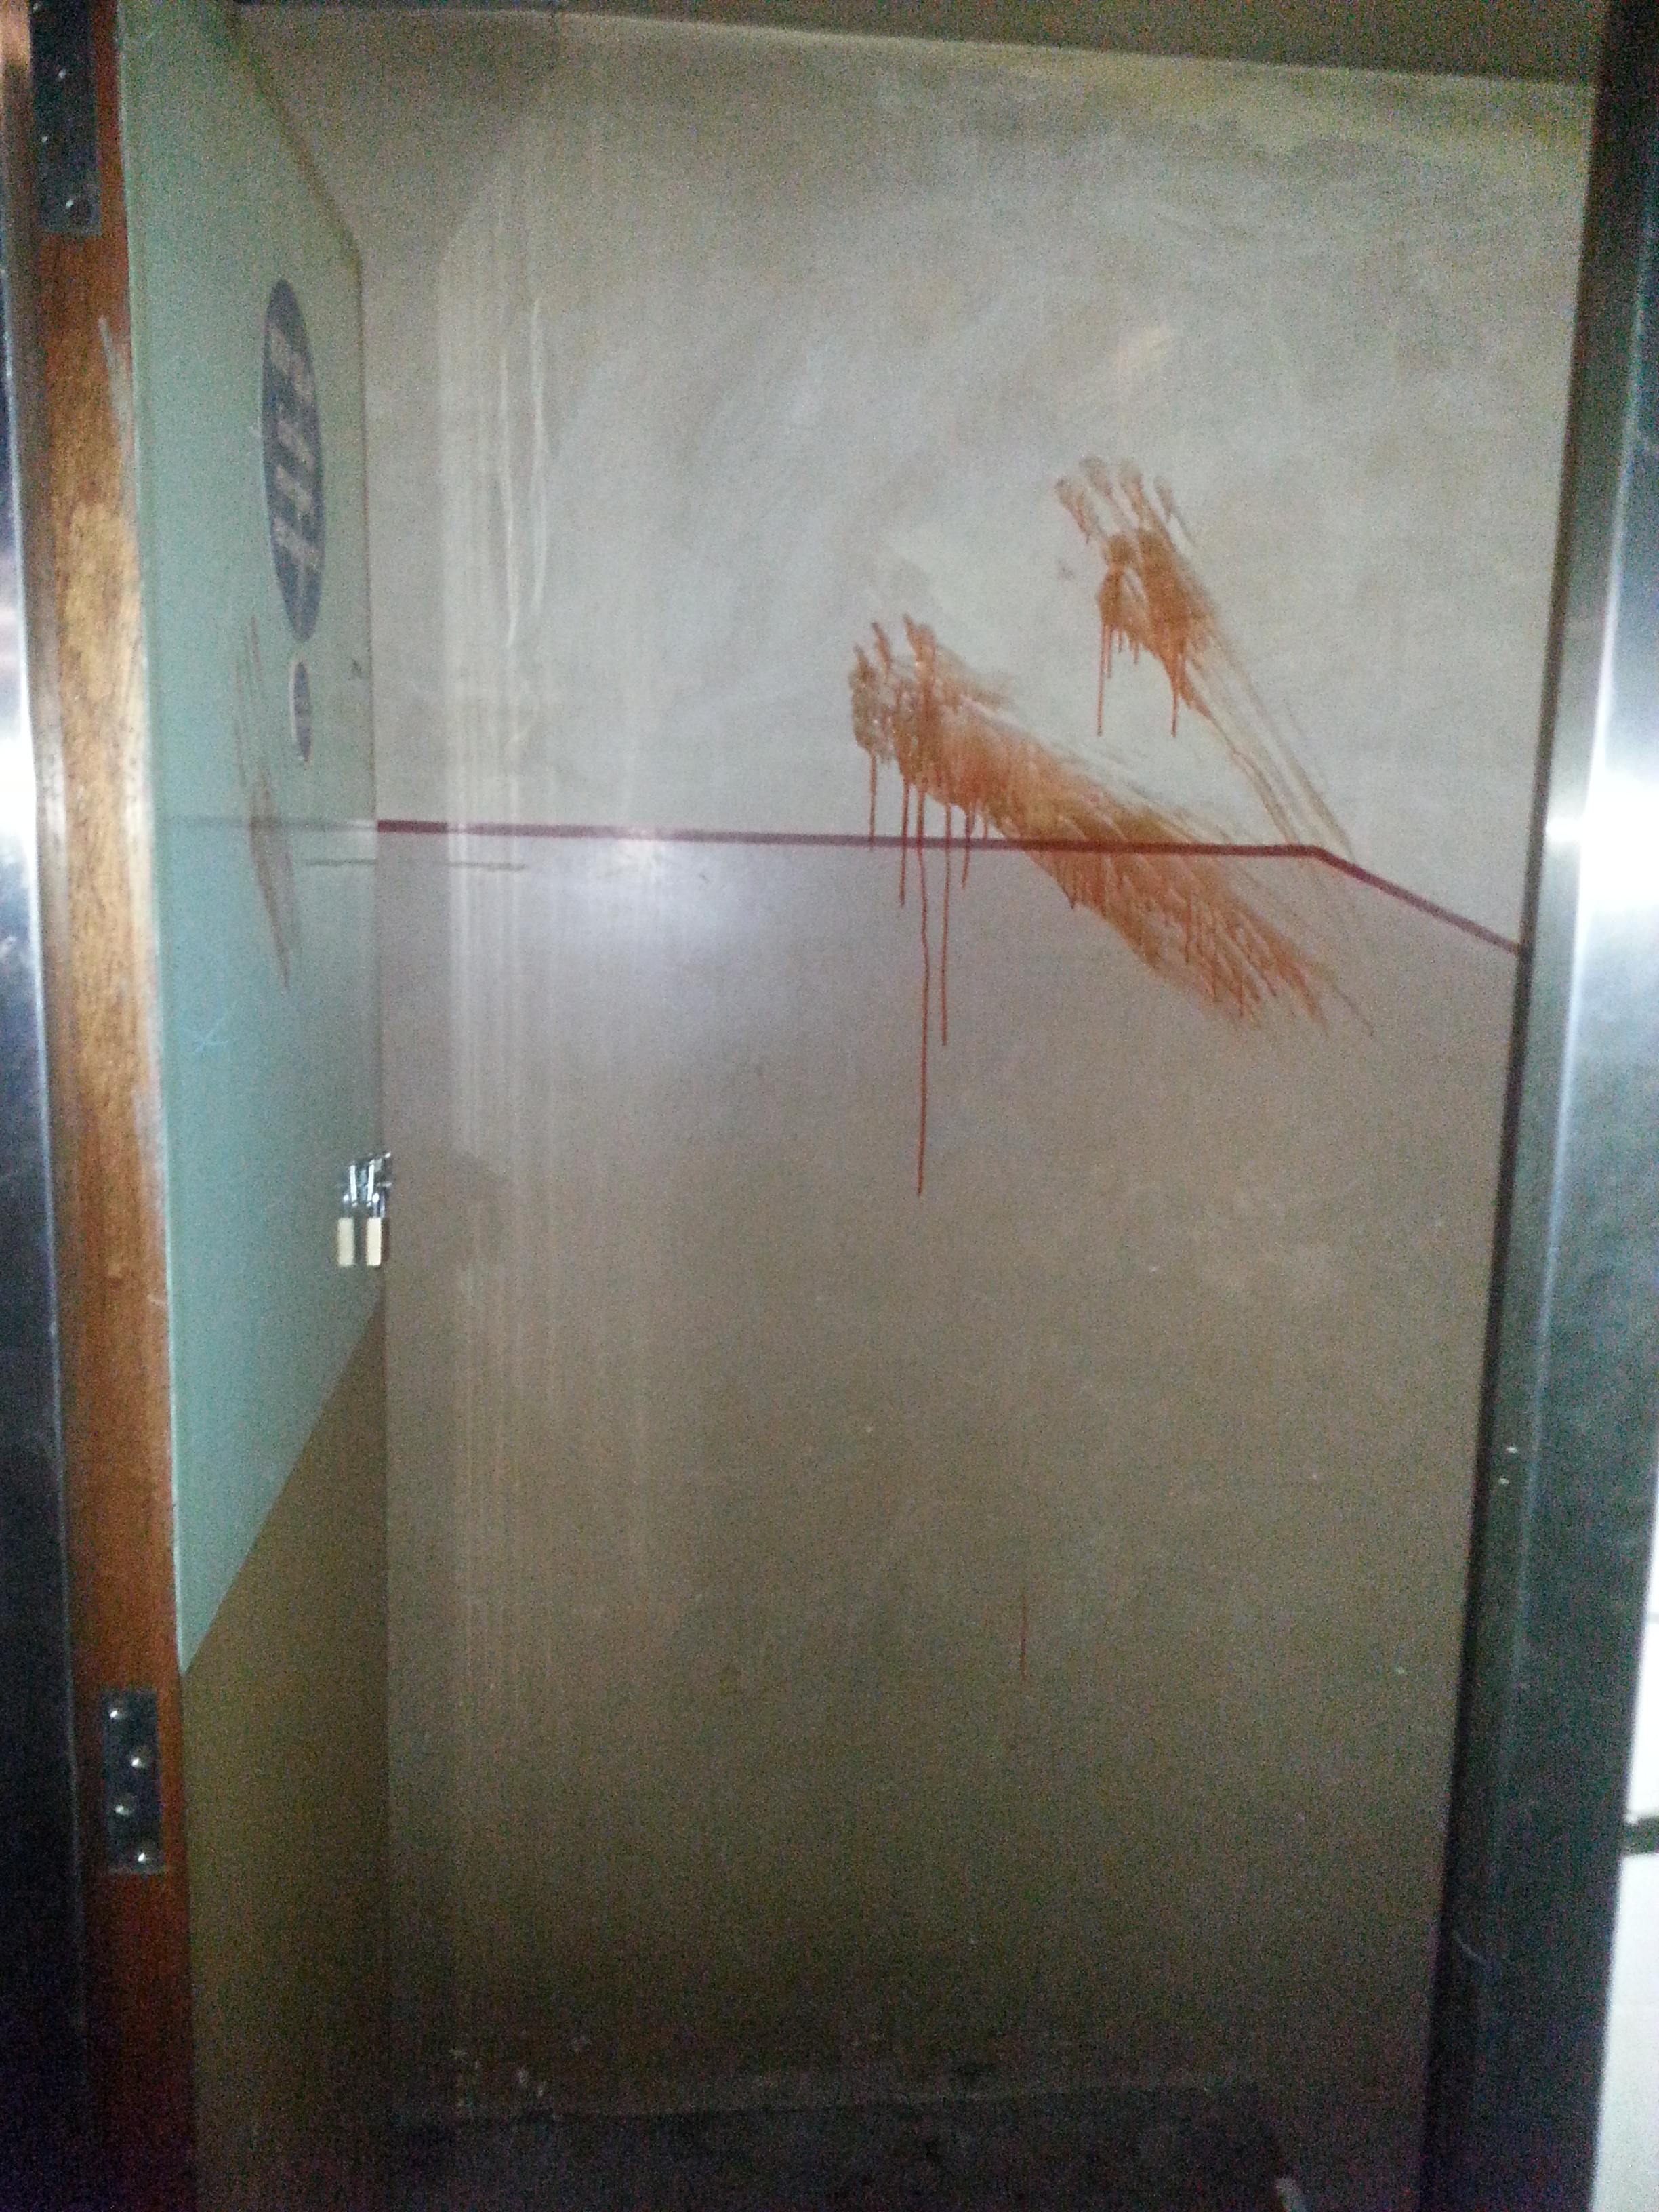 Fake blood hand prints leading down to the basement.